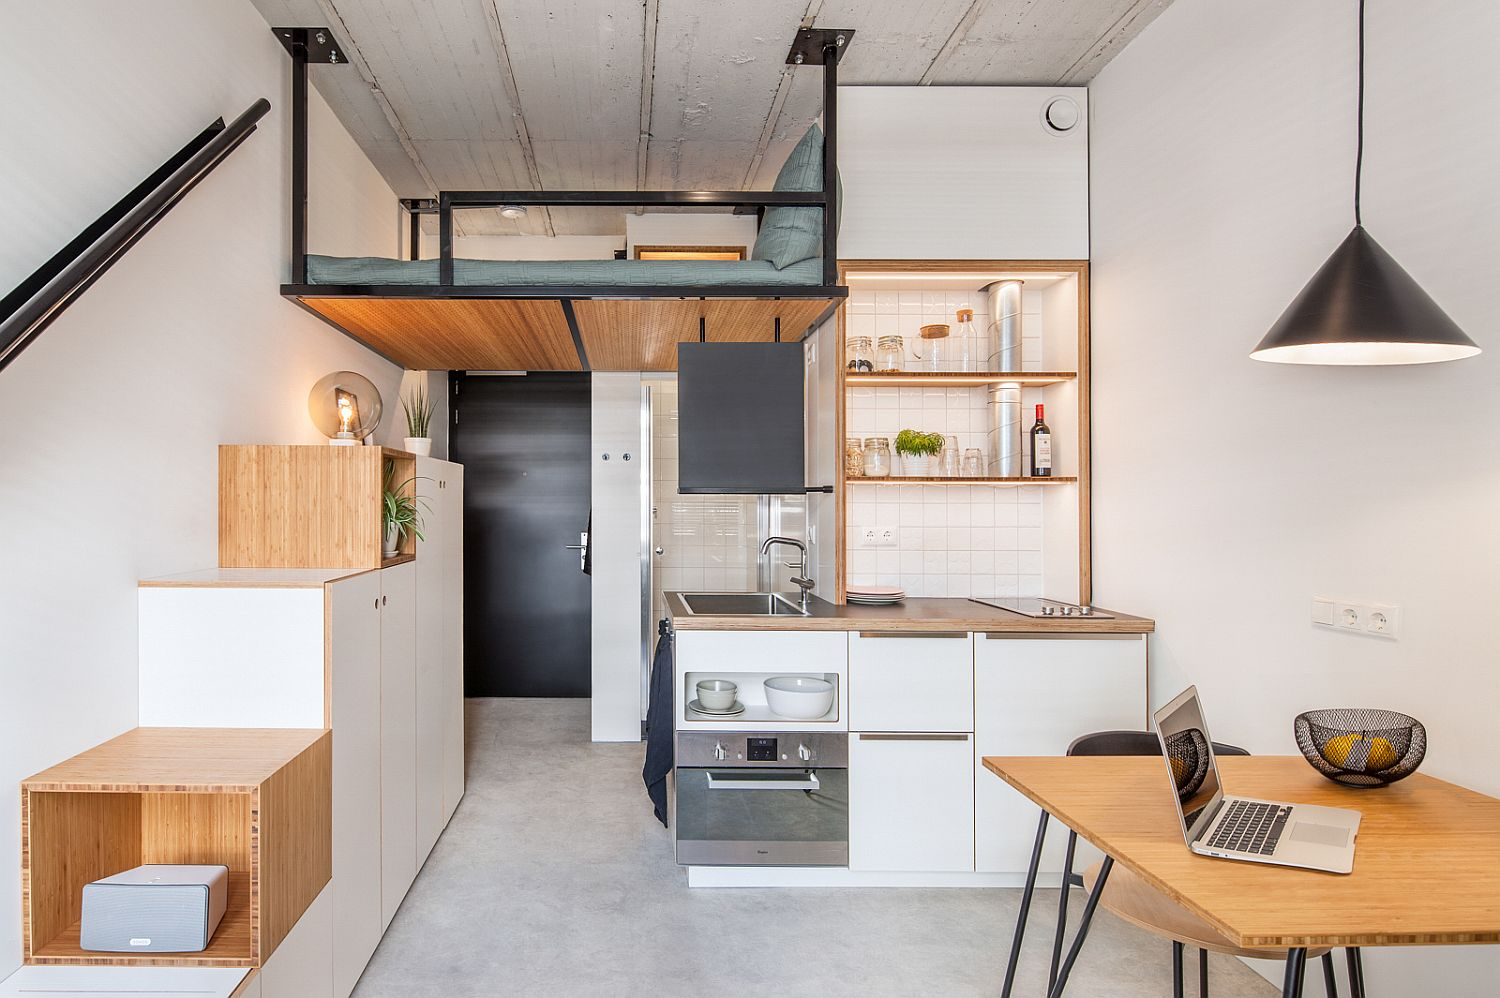 Look at the loft bedroom inside the 18 sqm apartment with wooden steps that double as storage units